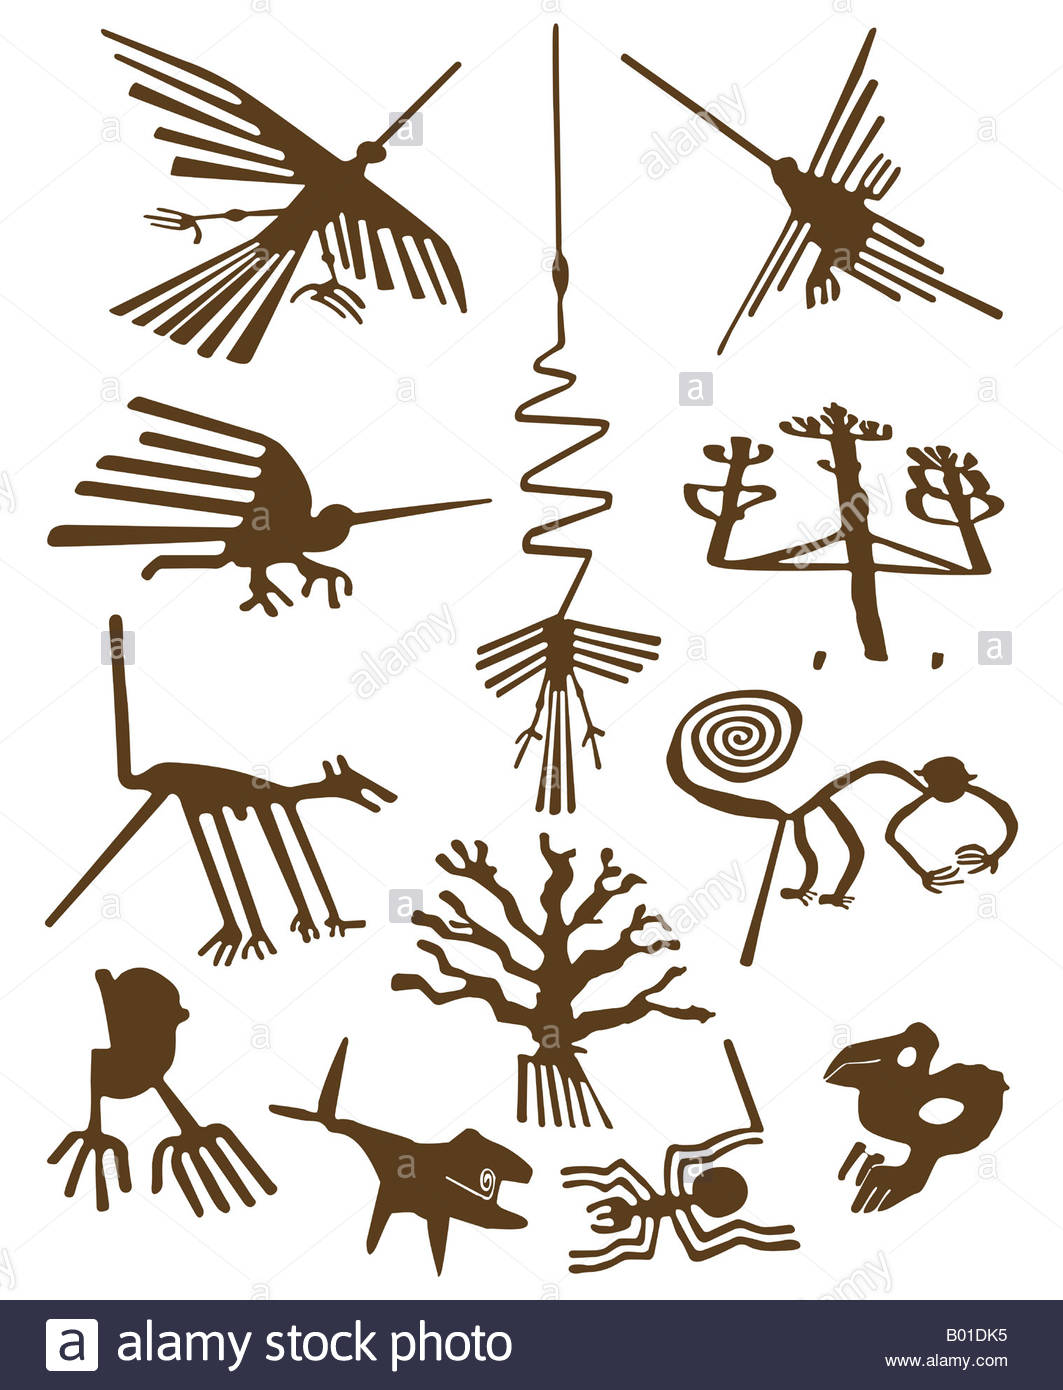 Nazca Lines Geoglyphs Stock Photo, Royalty Free Image: 17243049.